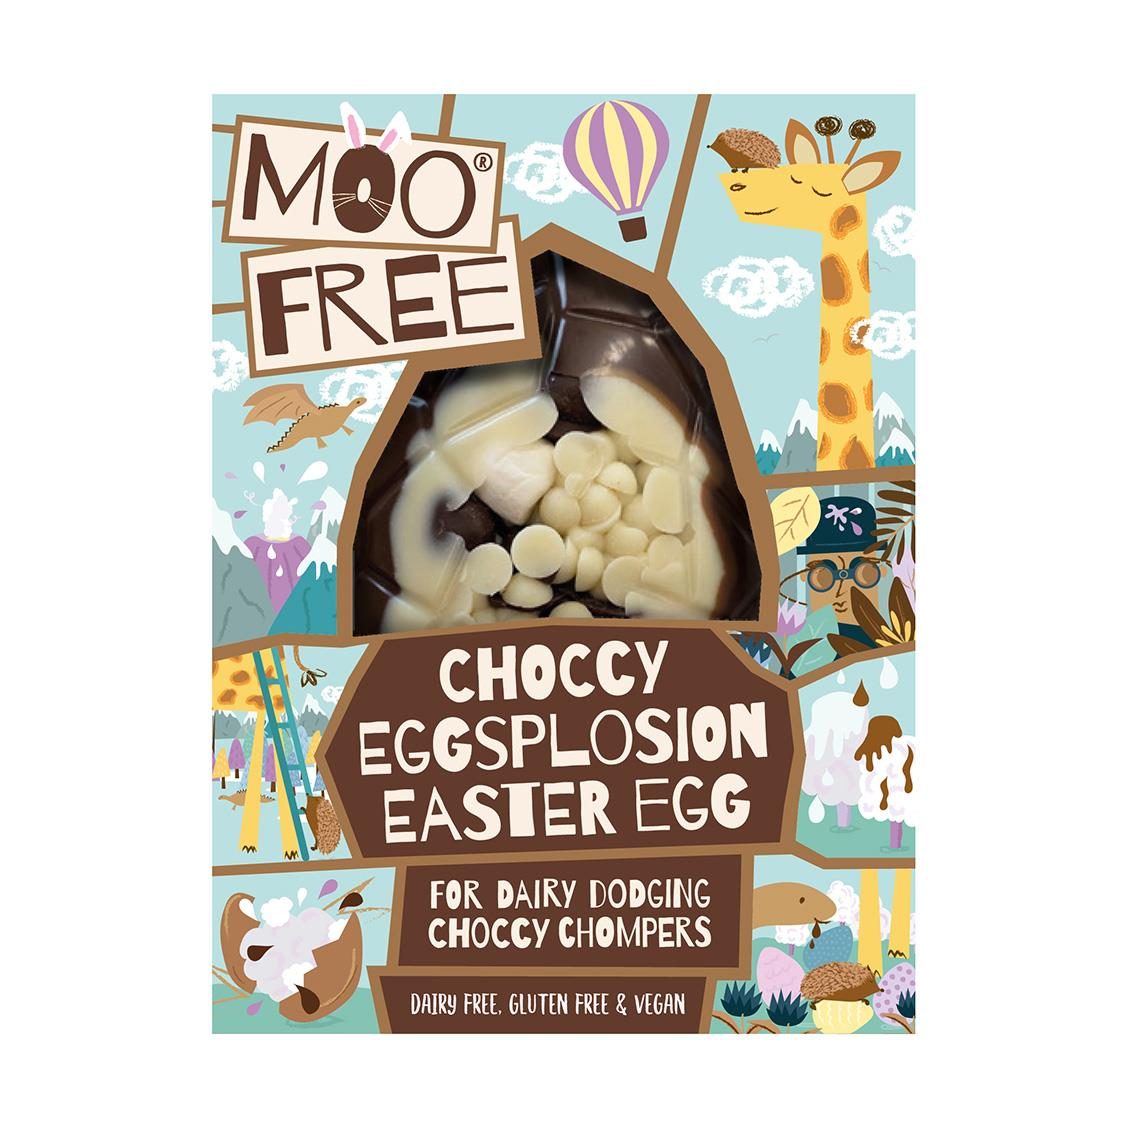 Moo Free - Choccy Eggsplosion Easter Egg